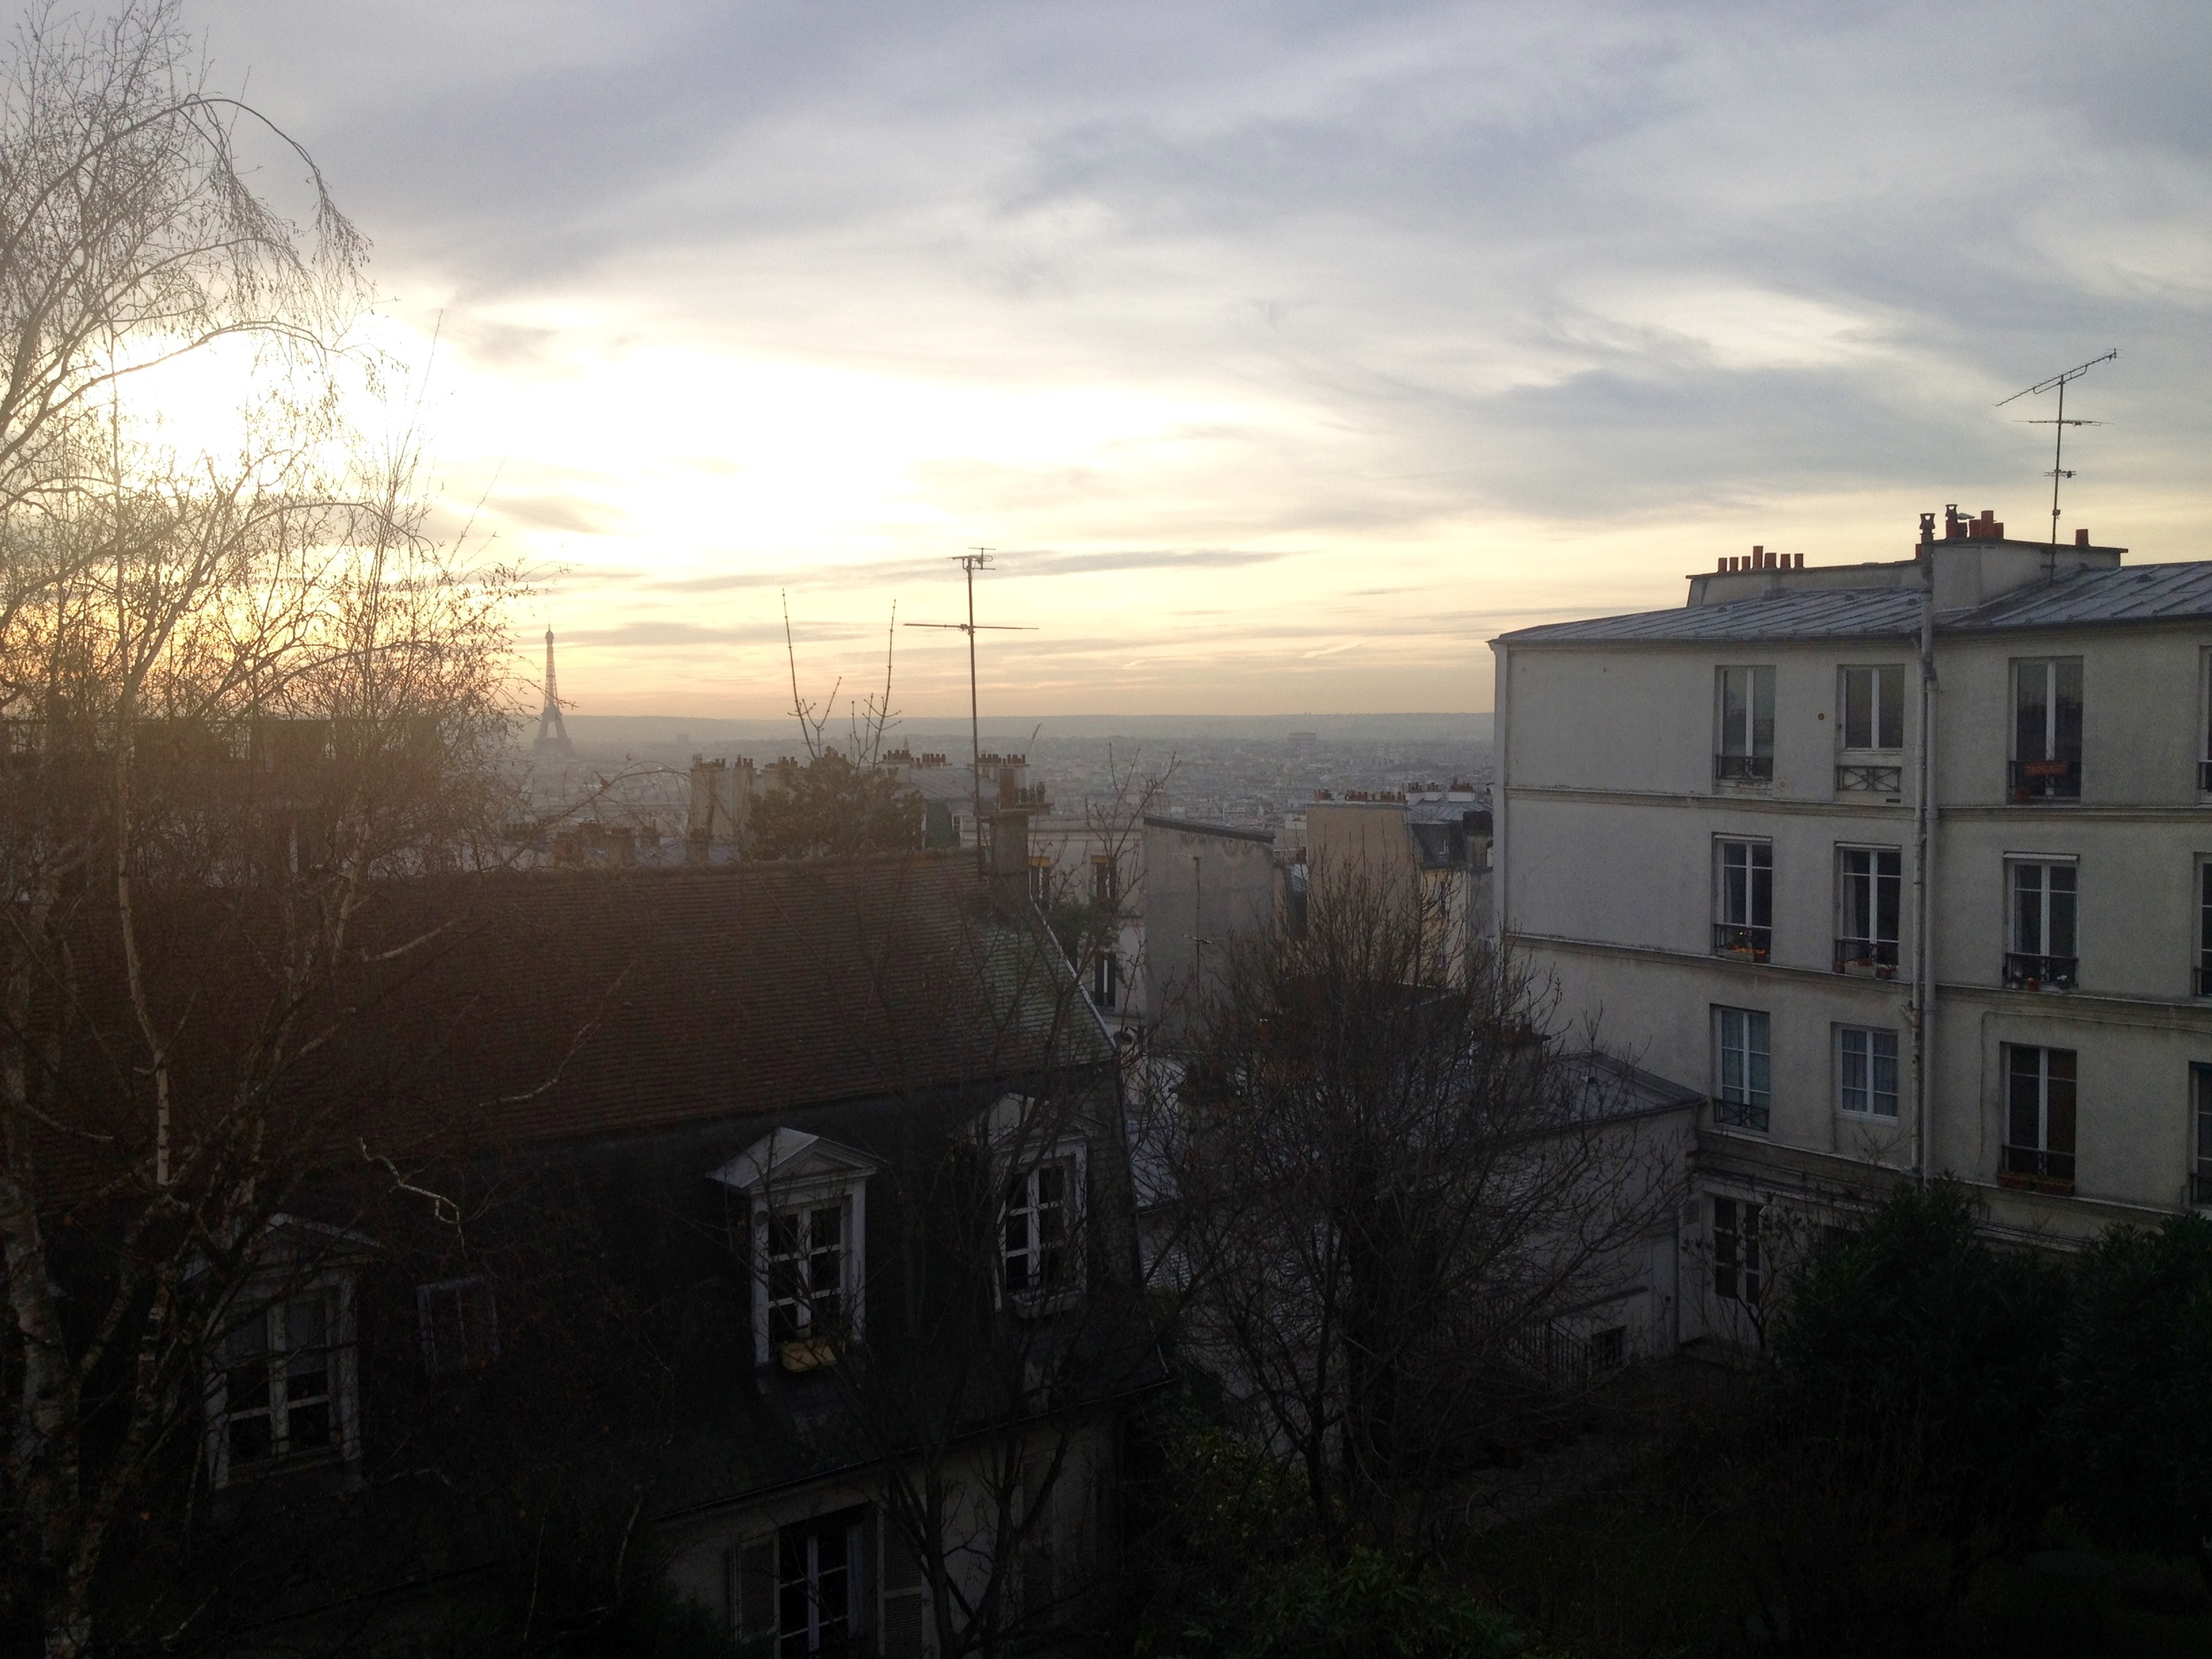 You can just barely make out the Eiffel Tower in the distance but I still love this shot.